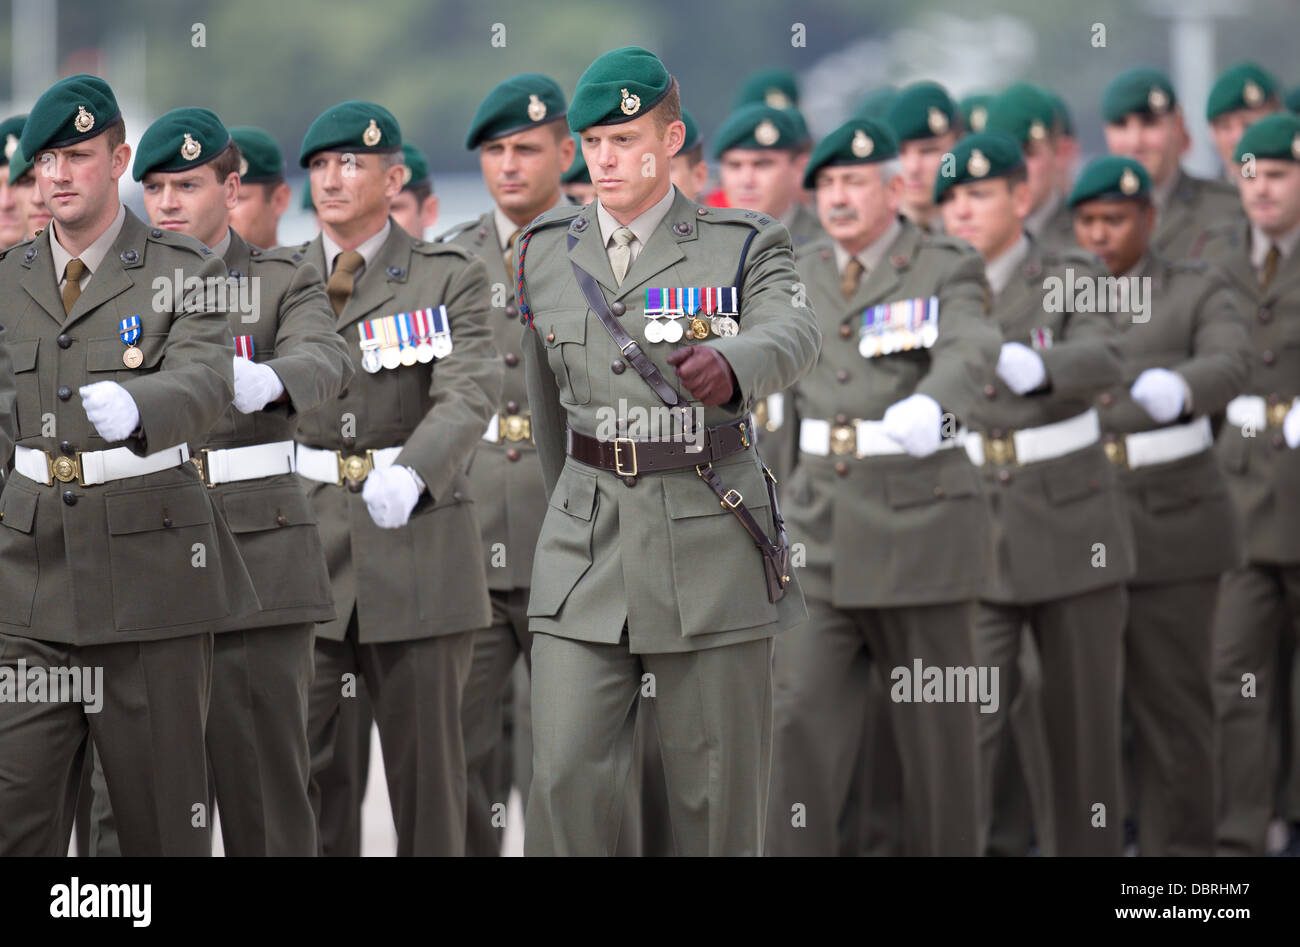 British army soldiers of the 1st Assault Group Royal Marines on parade at HMNB Devonport. - Stock Image